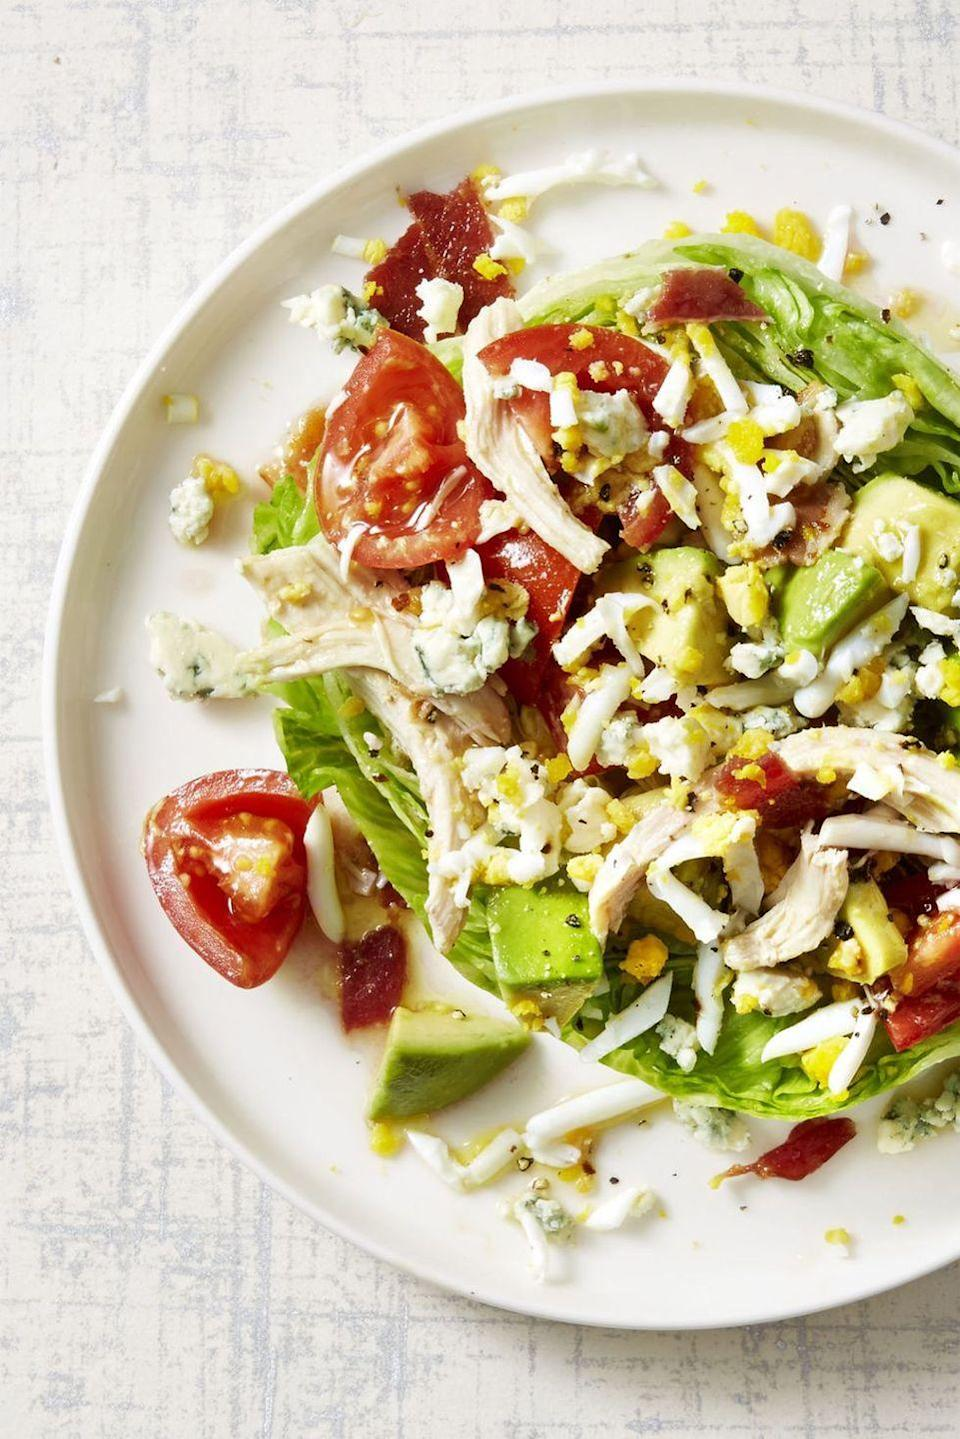 """<p>Crispy bacon, tender chicken, crumbled cheese, and chopped eggs prove that not all salads have to be boring.</p><p><em><a href=""""https://www.goodhousekeeping.com/food-recipes/easy/a45233/rotisserie-chicken-cobb-salad-recipe/"""" rel=""""nofollow noopener"""" target=""""_blank"""" data-ylk=""""slk:Get the recipe for Rotisserie Chicken Cobb Salad »"""" class=""""link rapid-noclick-resp"""">Get the recipe for Rotisserie Chicken Cobb Salad »</a></em></p><p><strong>RELATED:</strong> <a href=""""https://www.goodhousekeeping.com/food-recipes/healthy/g180/healthy-salads/"""" rel=""""nofollow noopener"""" target=""""_blank"""" data-ylk=""""slk:31 Healthy Salads for a Very Filling, Very Un-boring Meal"""" class=""""link rapid-noclick-resp"""">31 Healthy Salads for a Very Filling, Very Un-boring Meal</a></p>"""